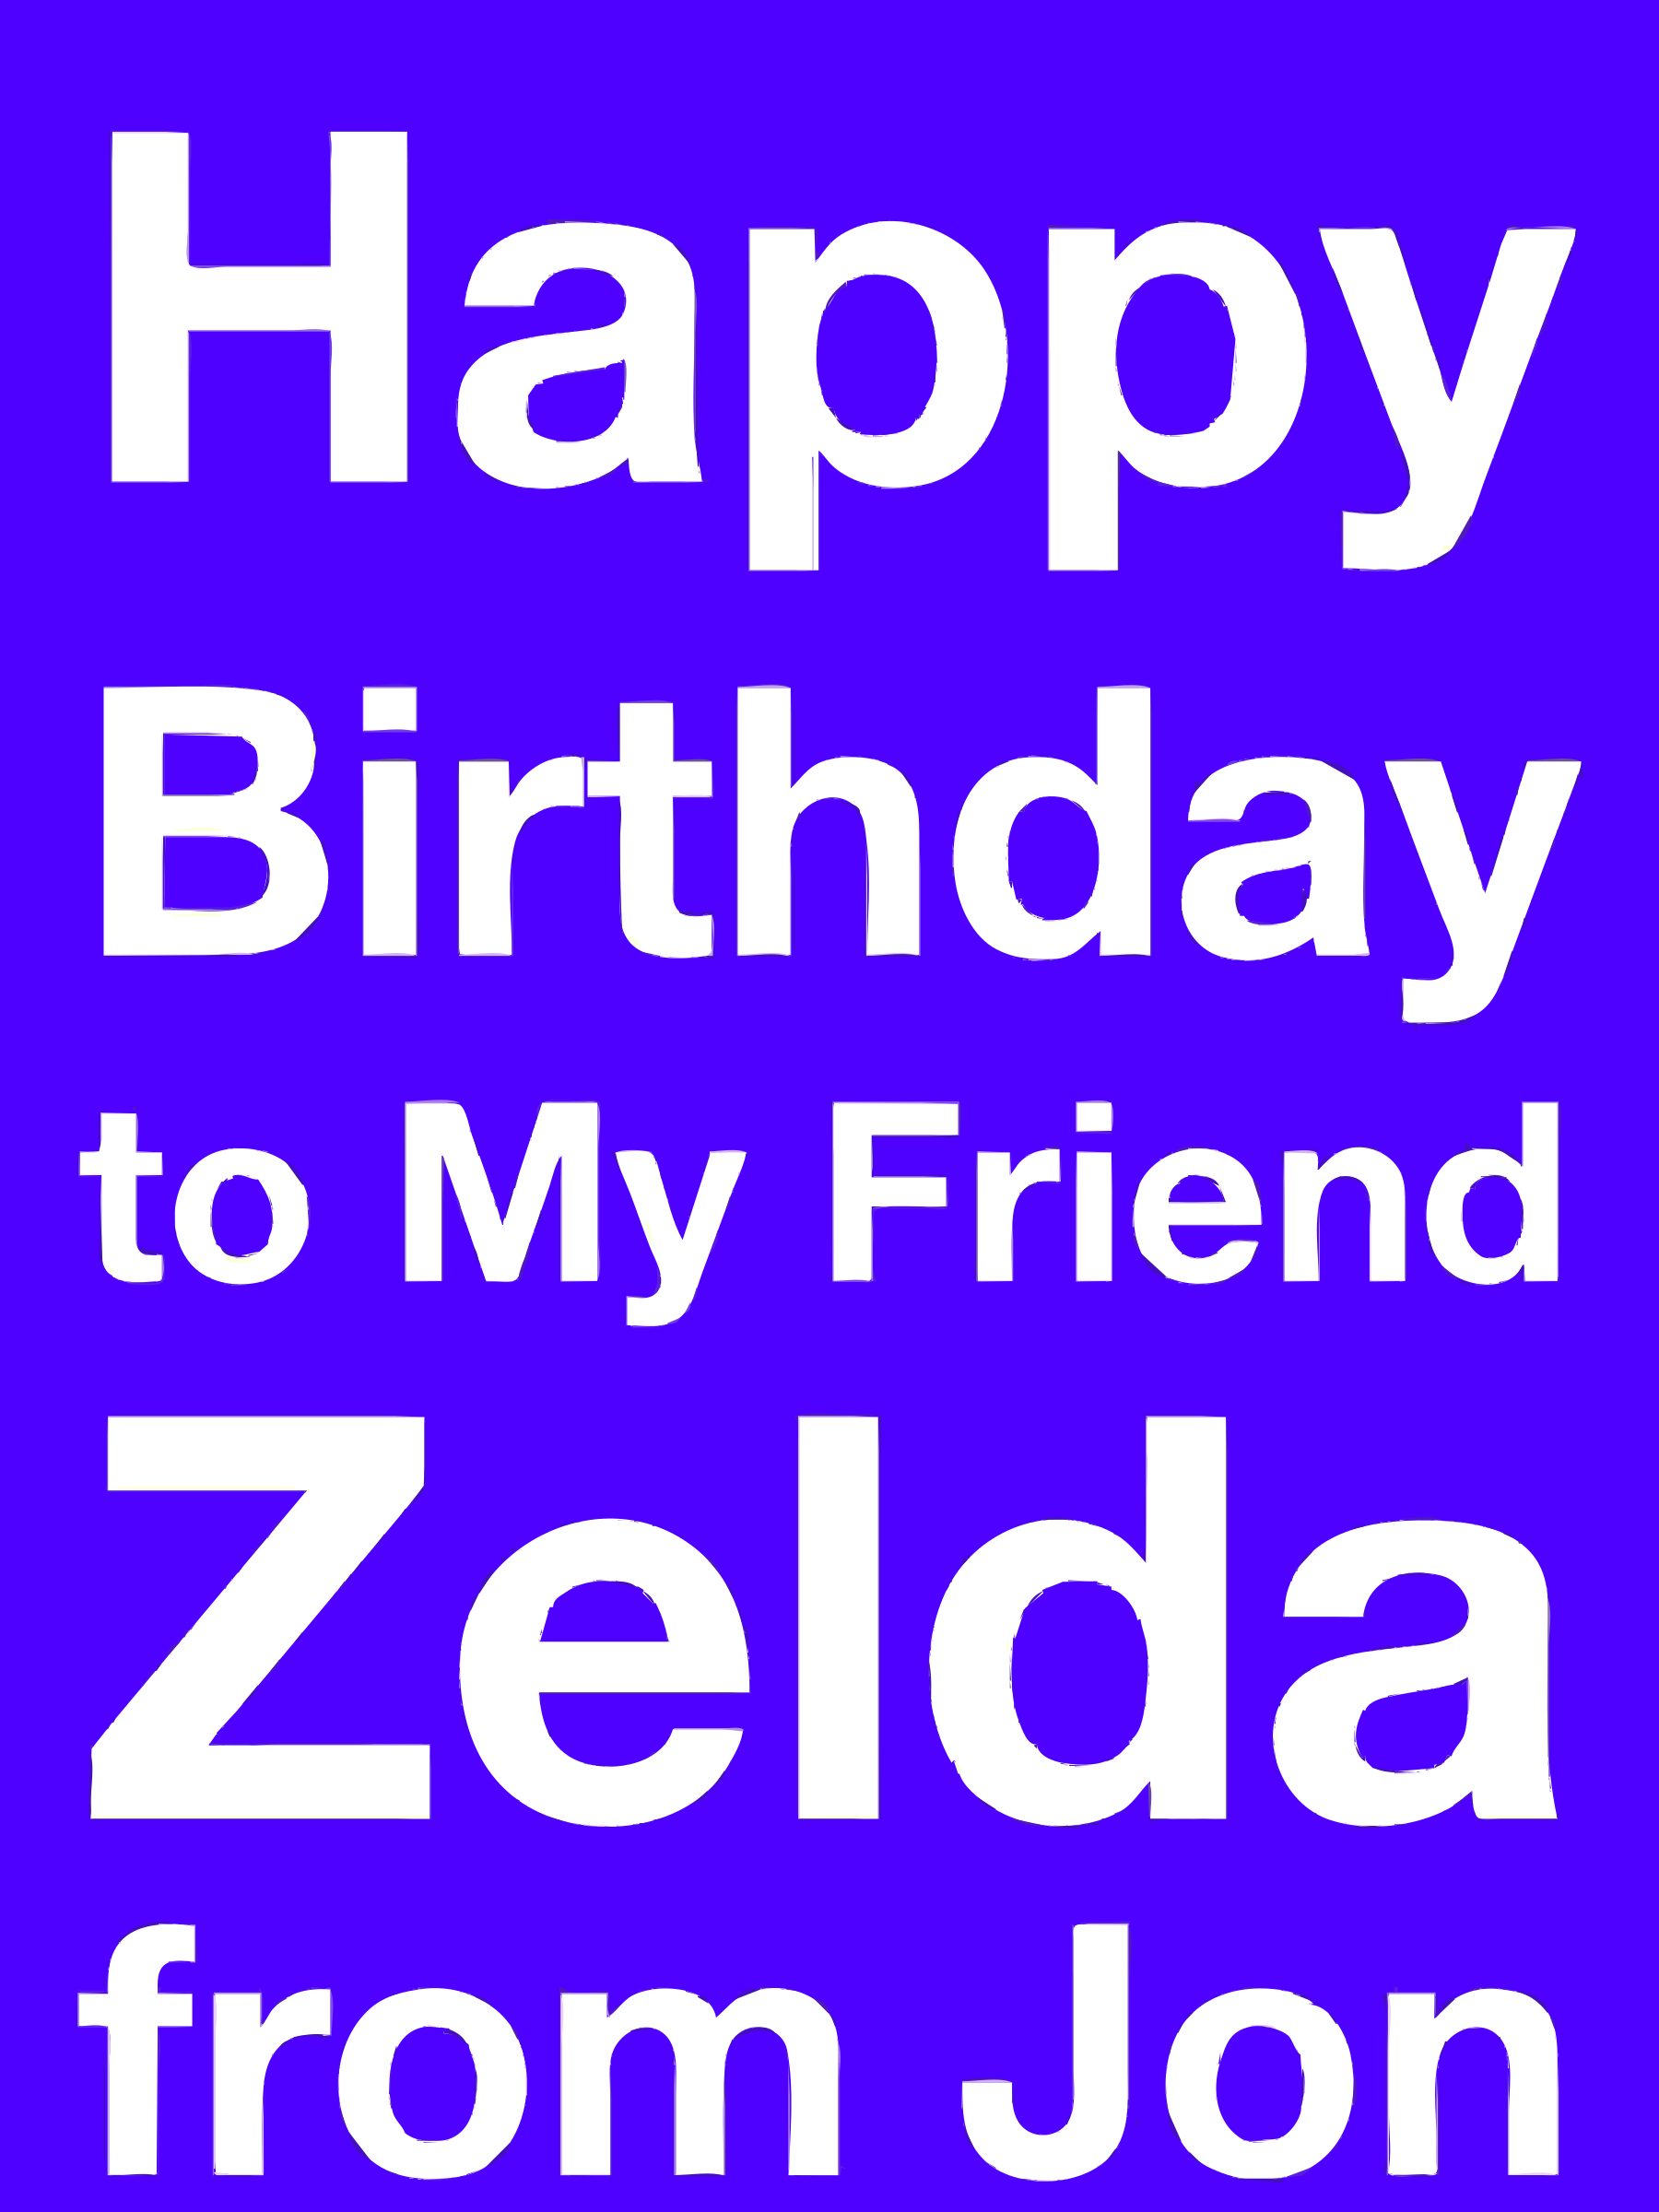 Happy Birthday Zelda by rejon